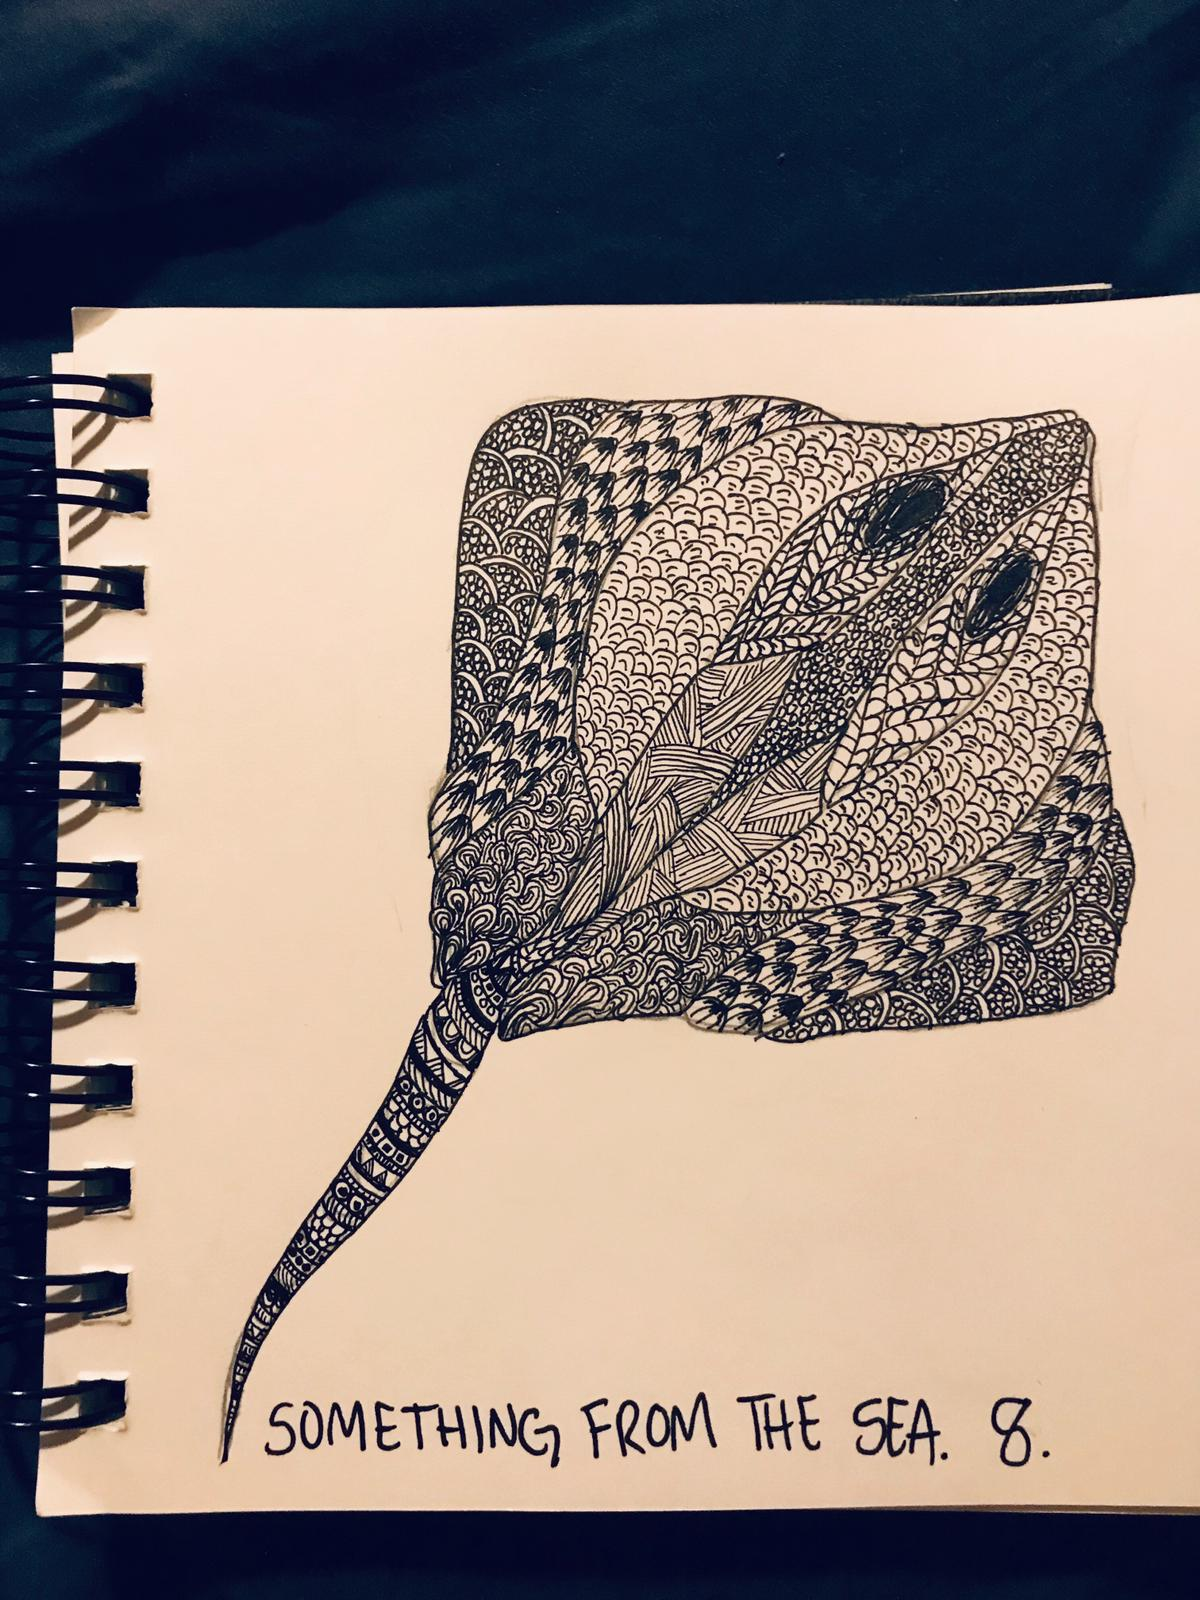 An ink picture of a ray that has a lot of cool repeating patterns